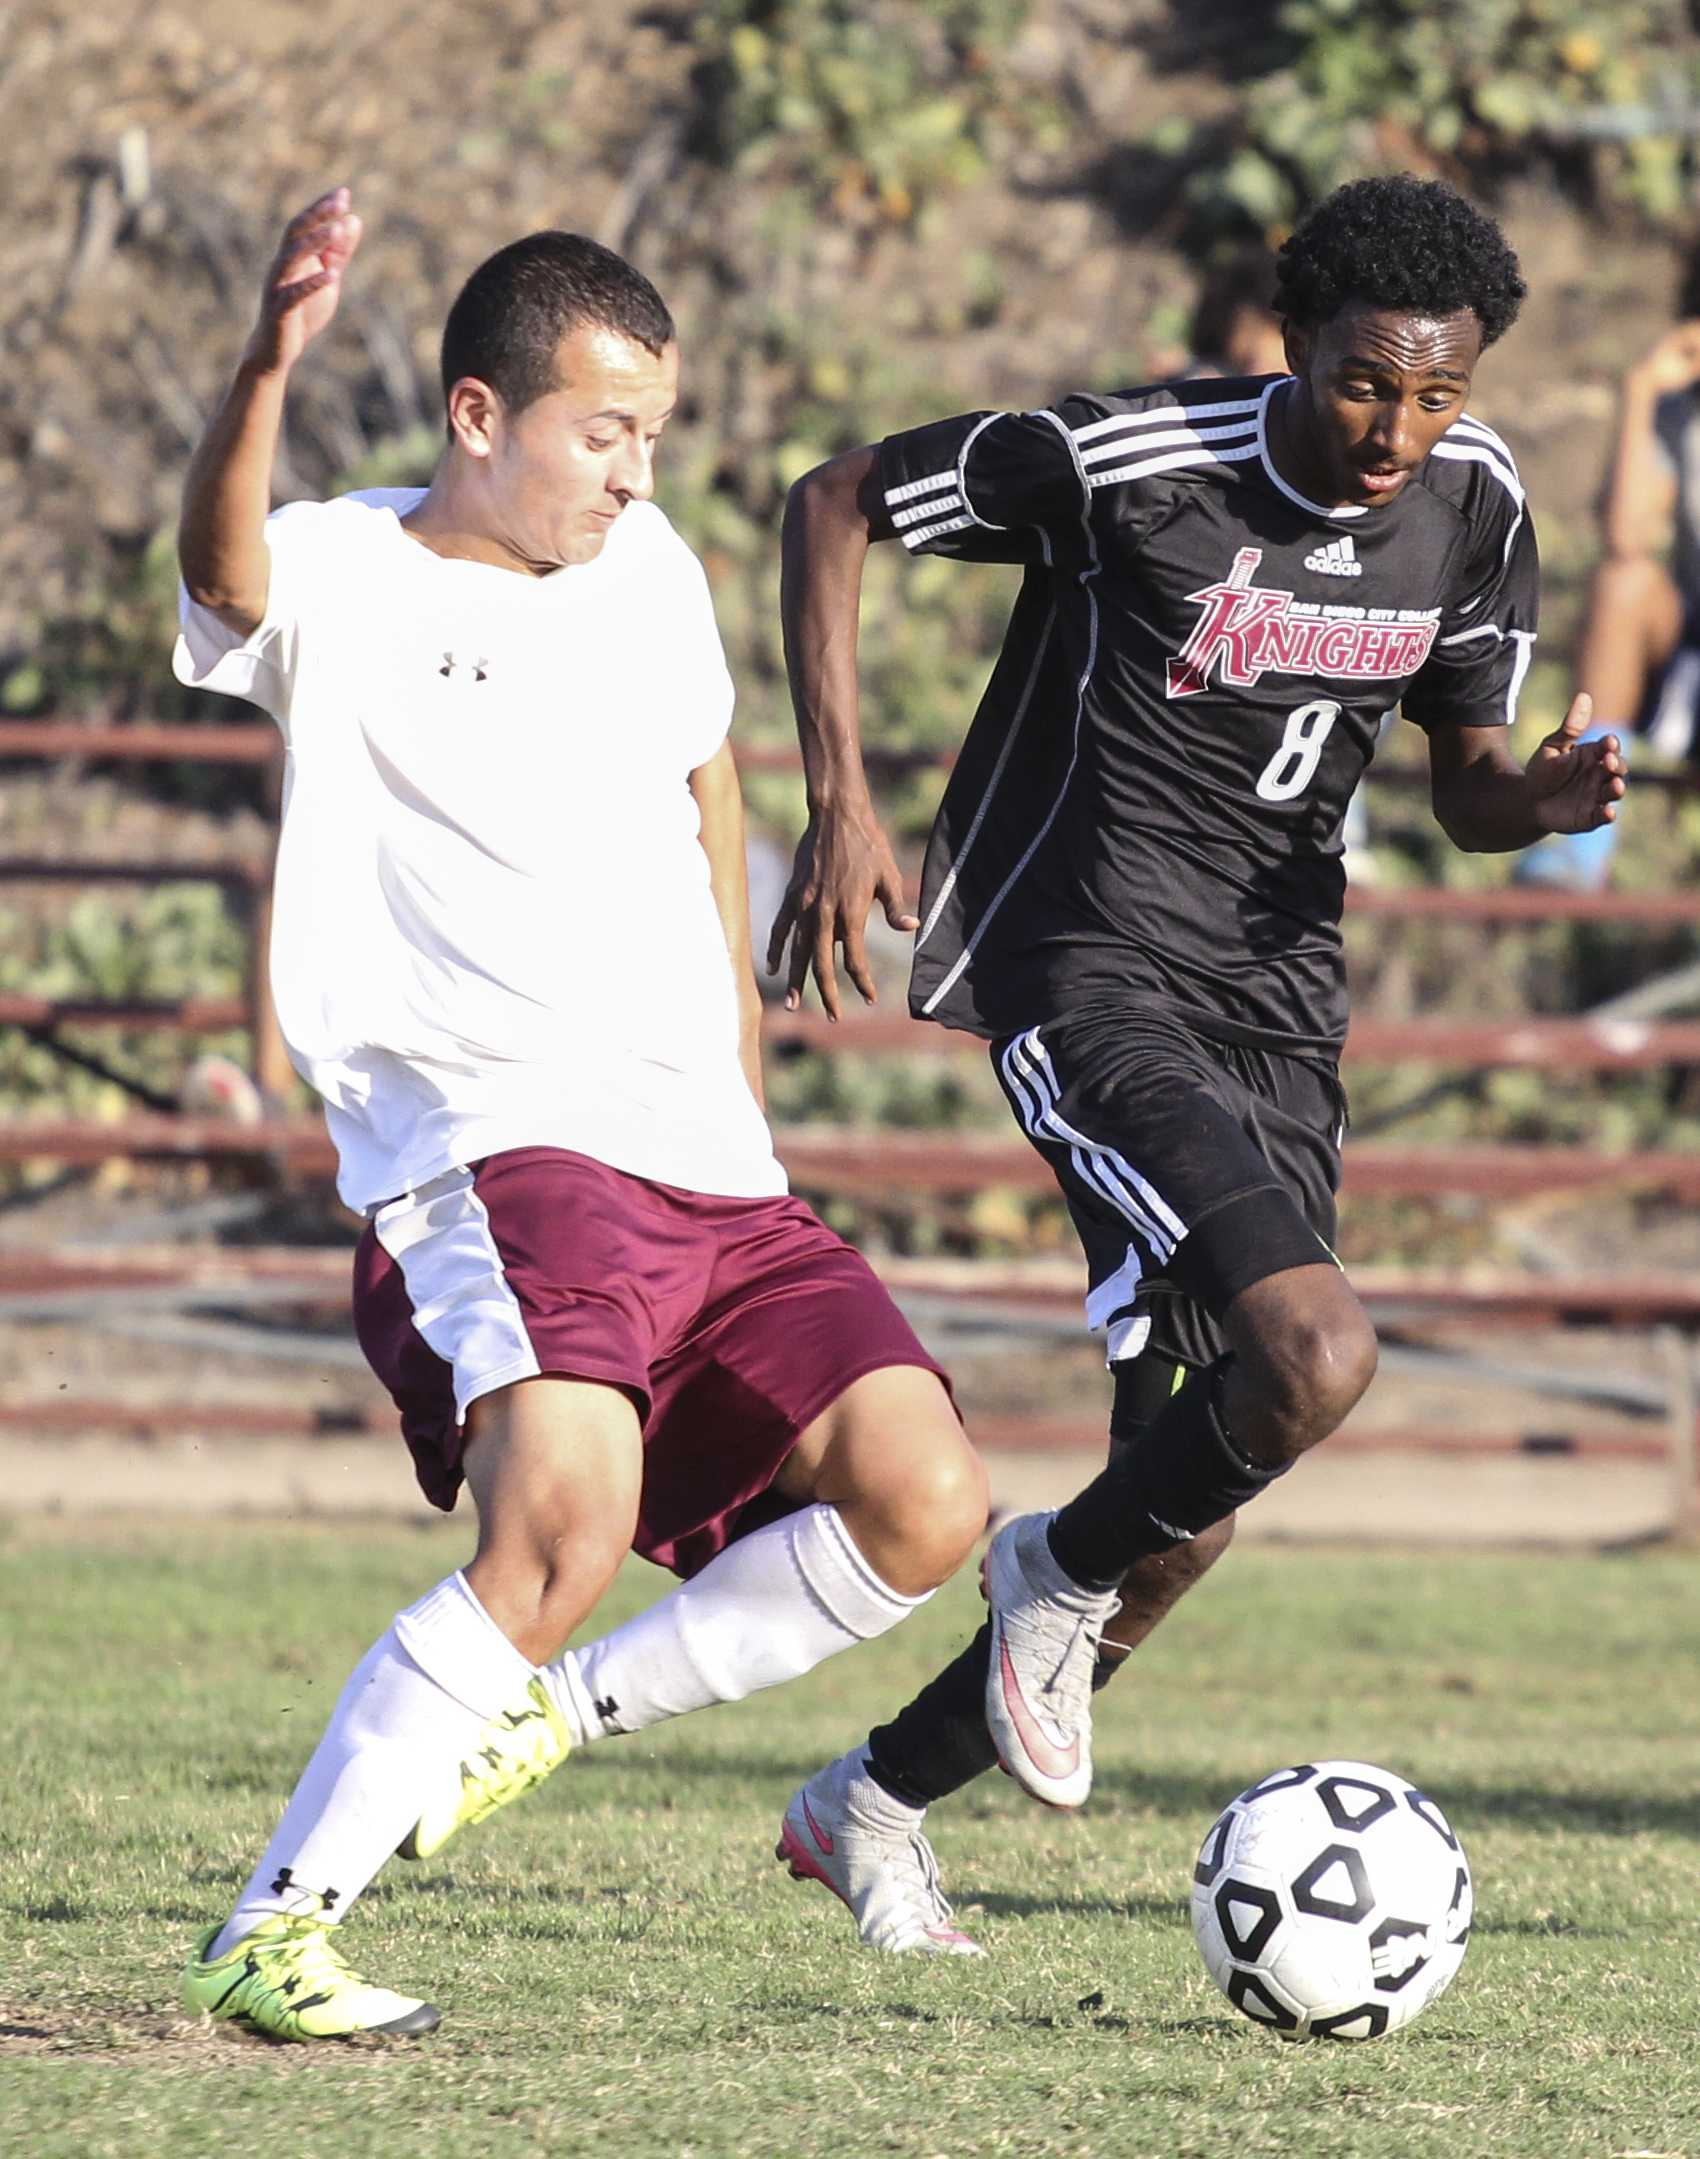 San Diego City College men's soccer midfielder Tadey Anteneh trails Victor Valley Rams freshmen forward Marvin Soriano to stop his advancement to the Knights' goal during their Oct. 23 game on the City College soccer field. Photo credit: Celia Jimenez